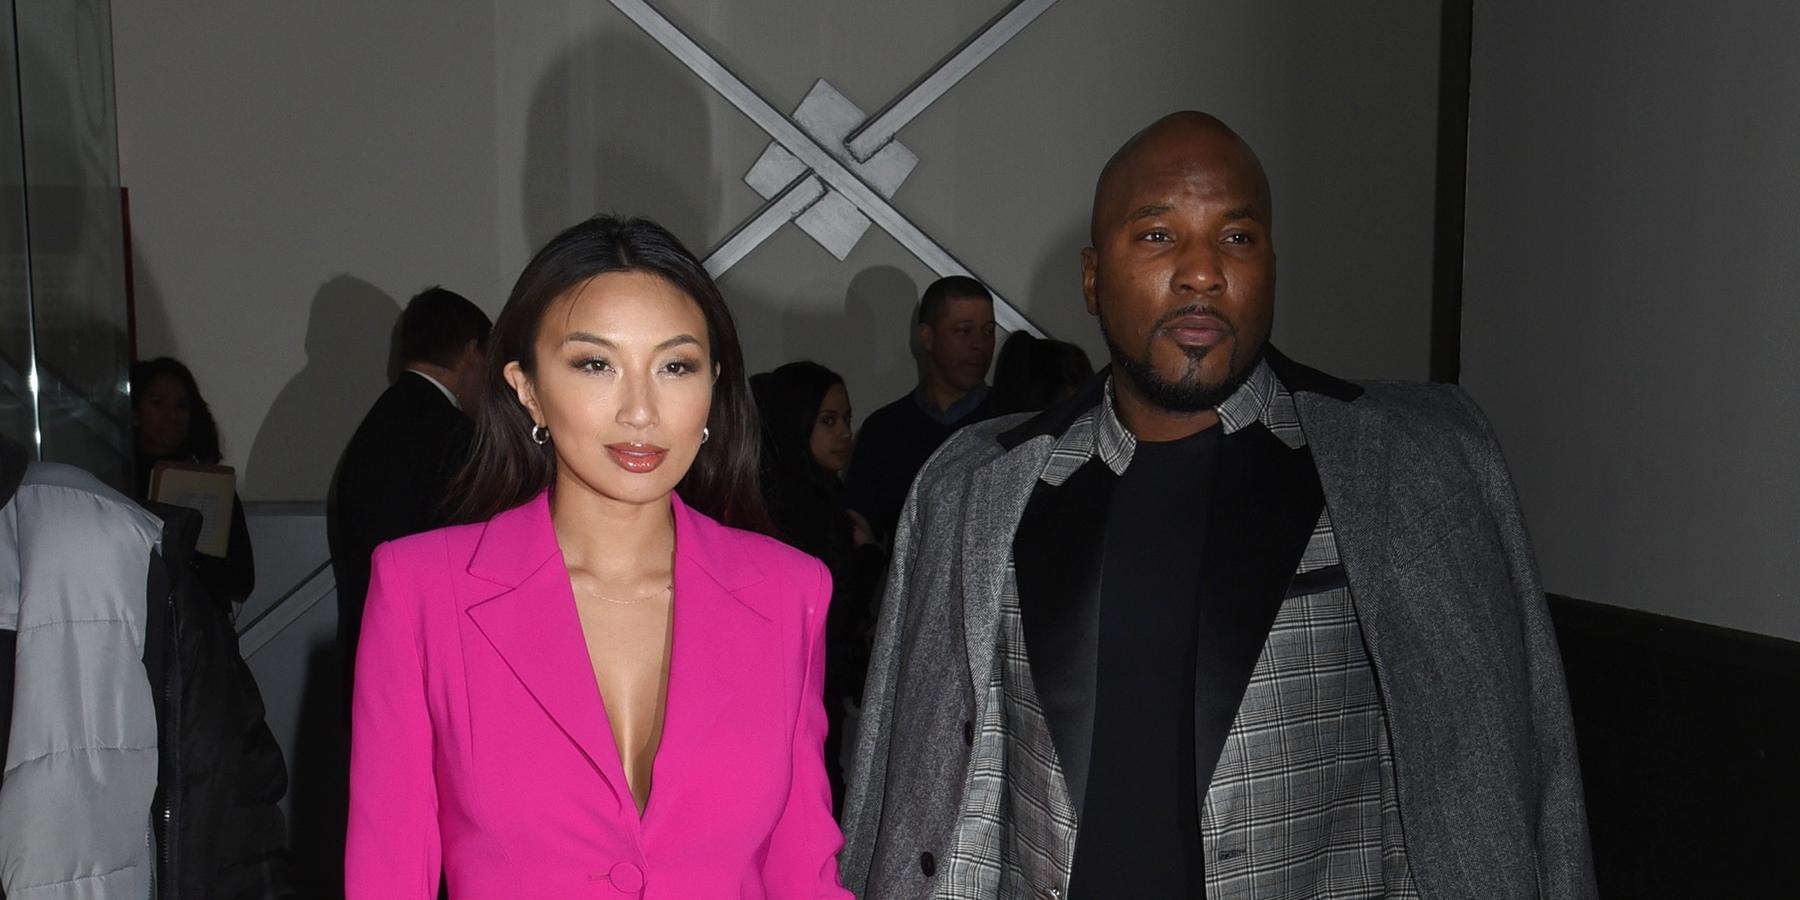 Jeannie Mai and Jeezy at the Pamella Roland Fall/Winter 2020 Runway Show in NYC